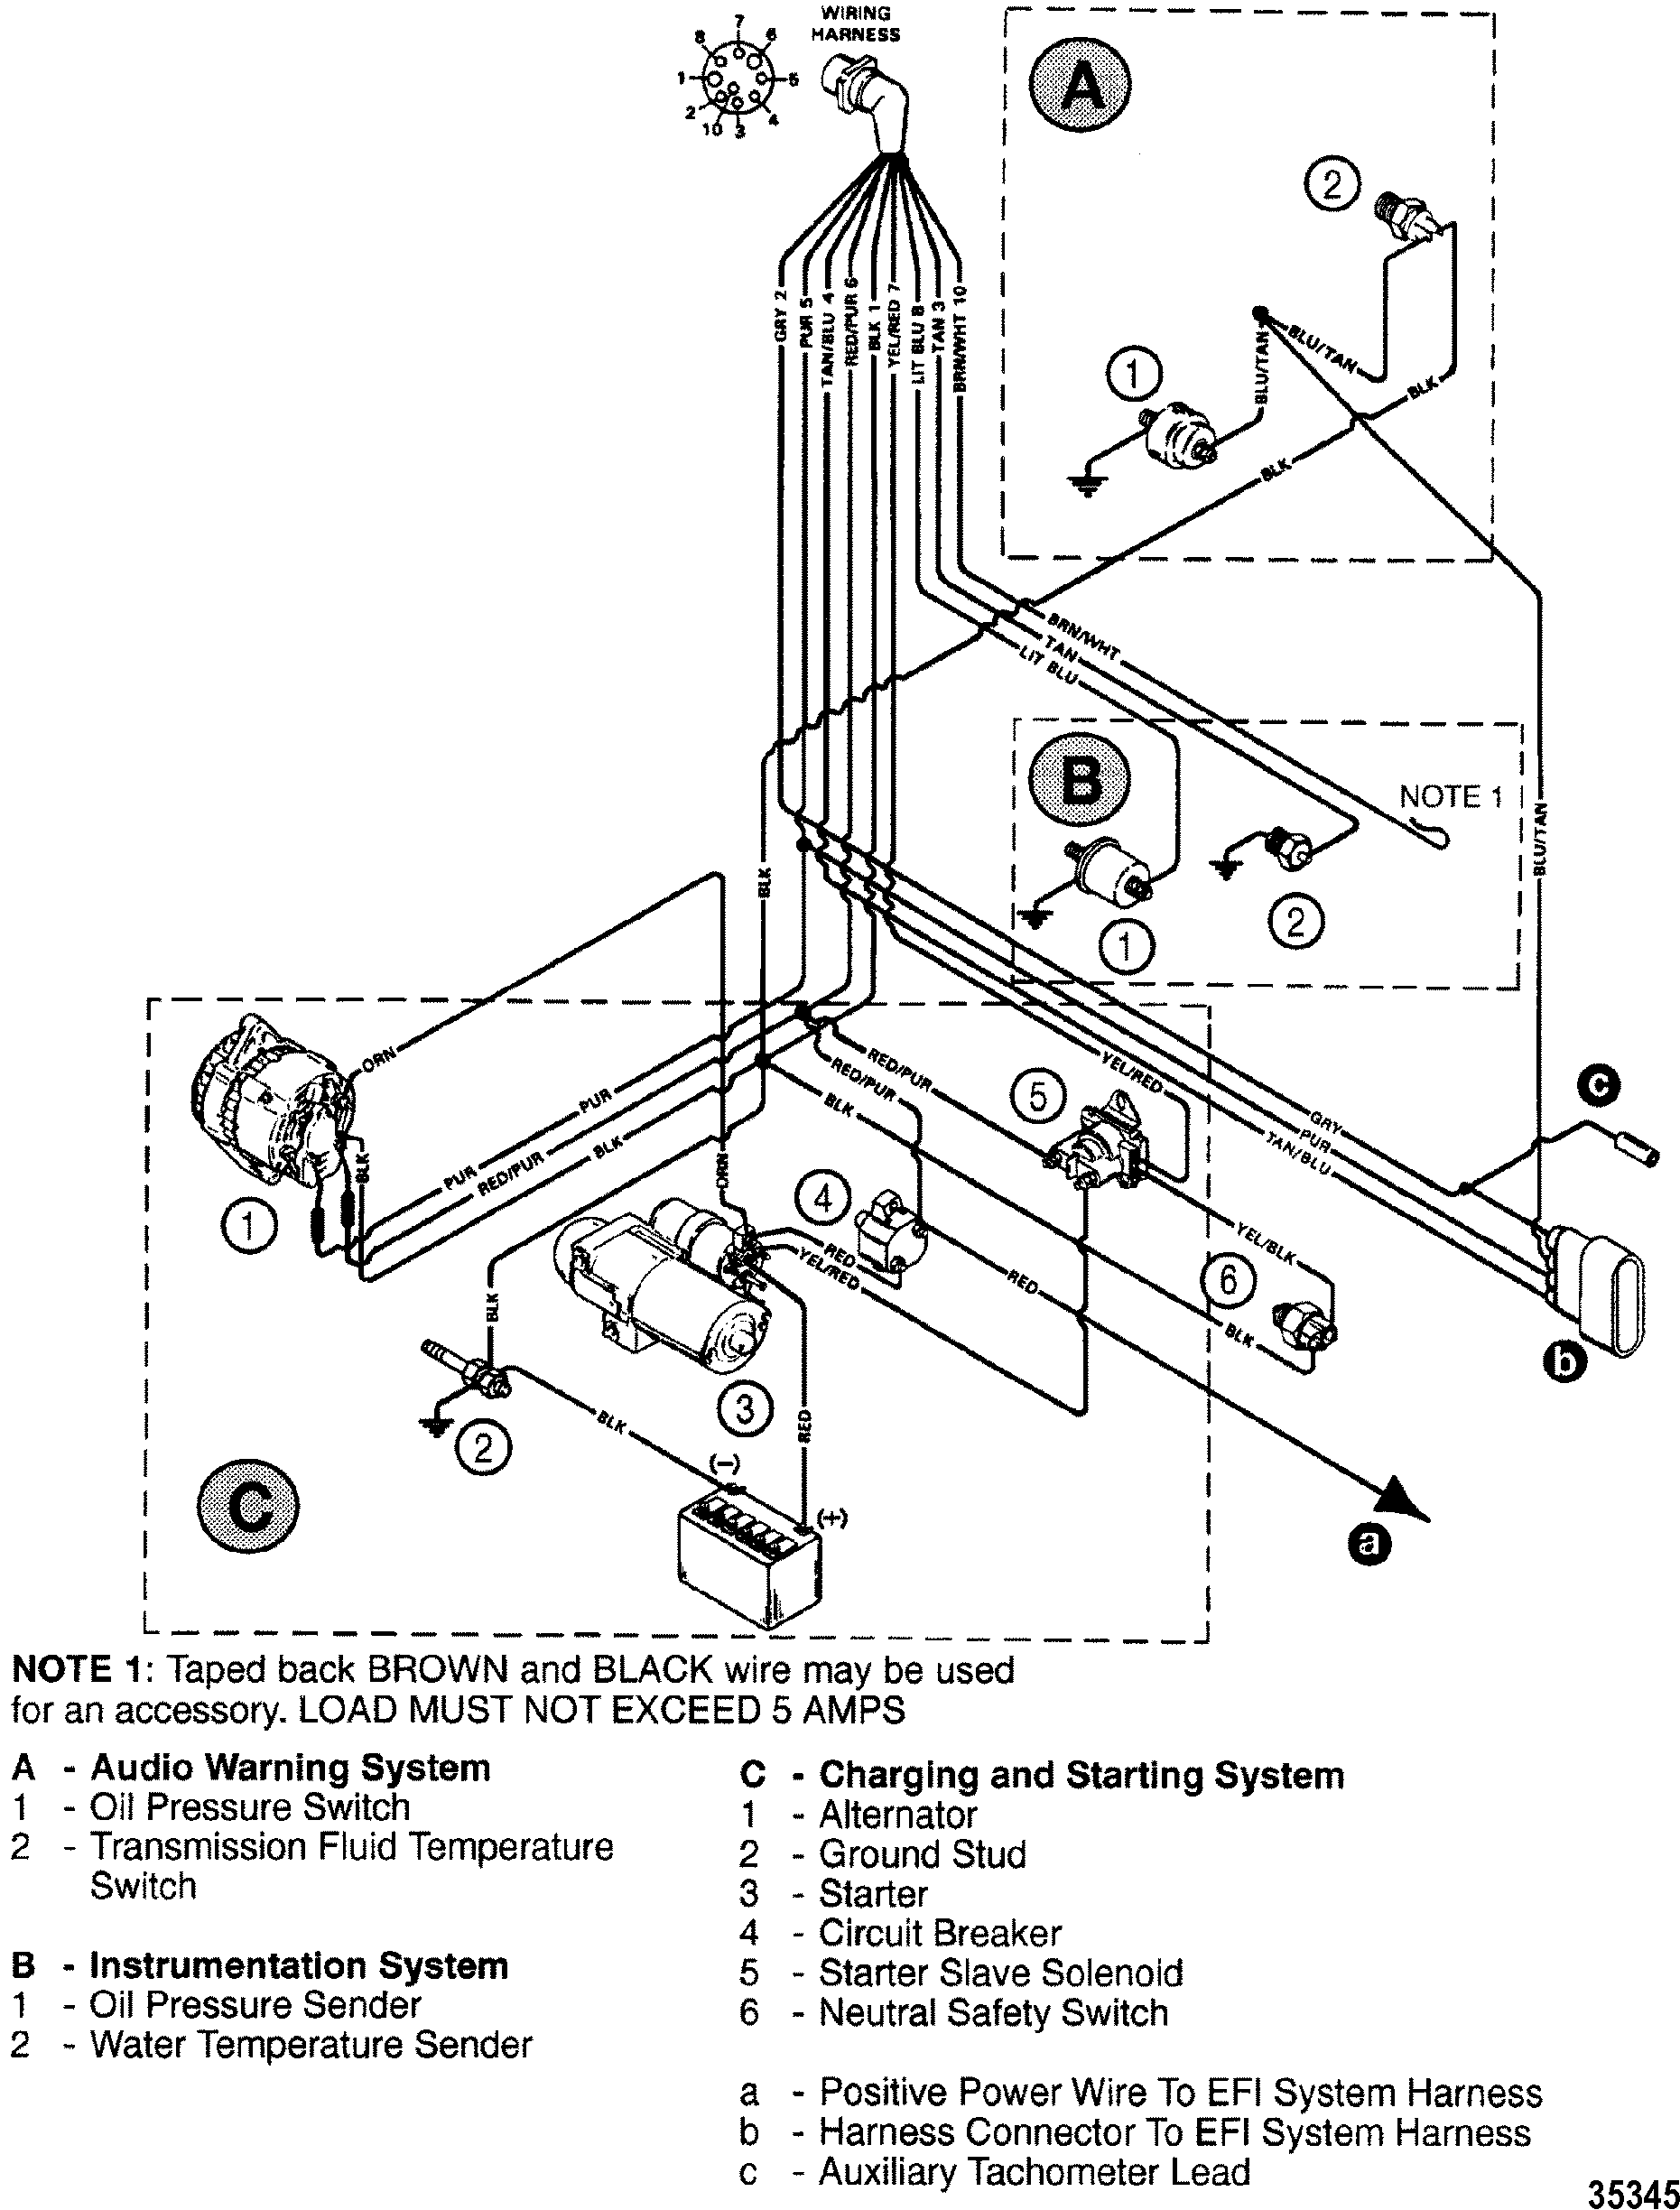 260 mercruiser cooling system diagram html